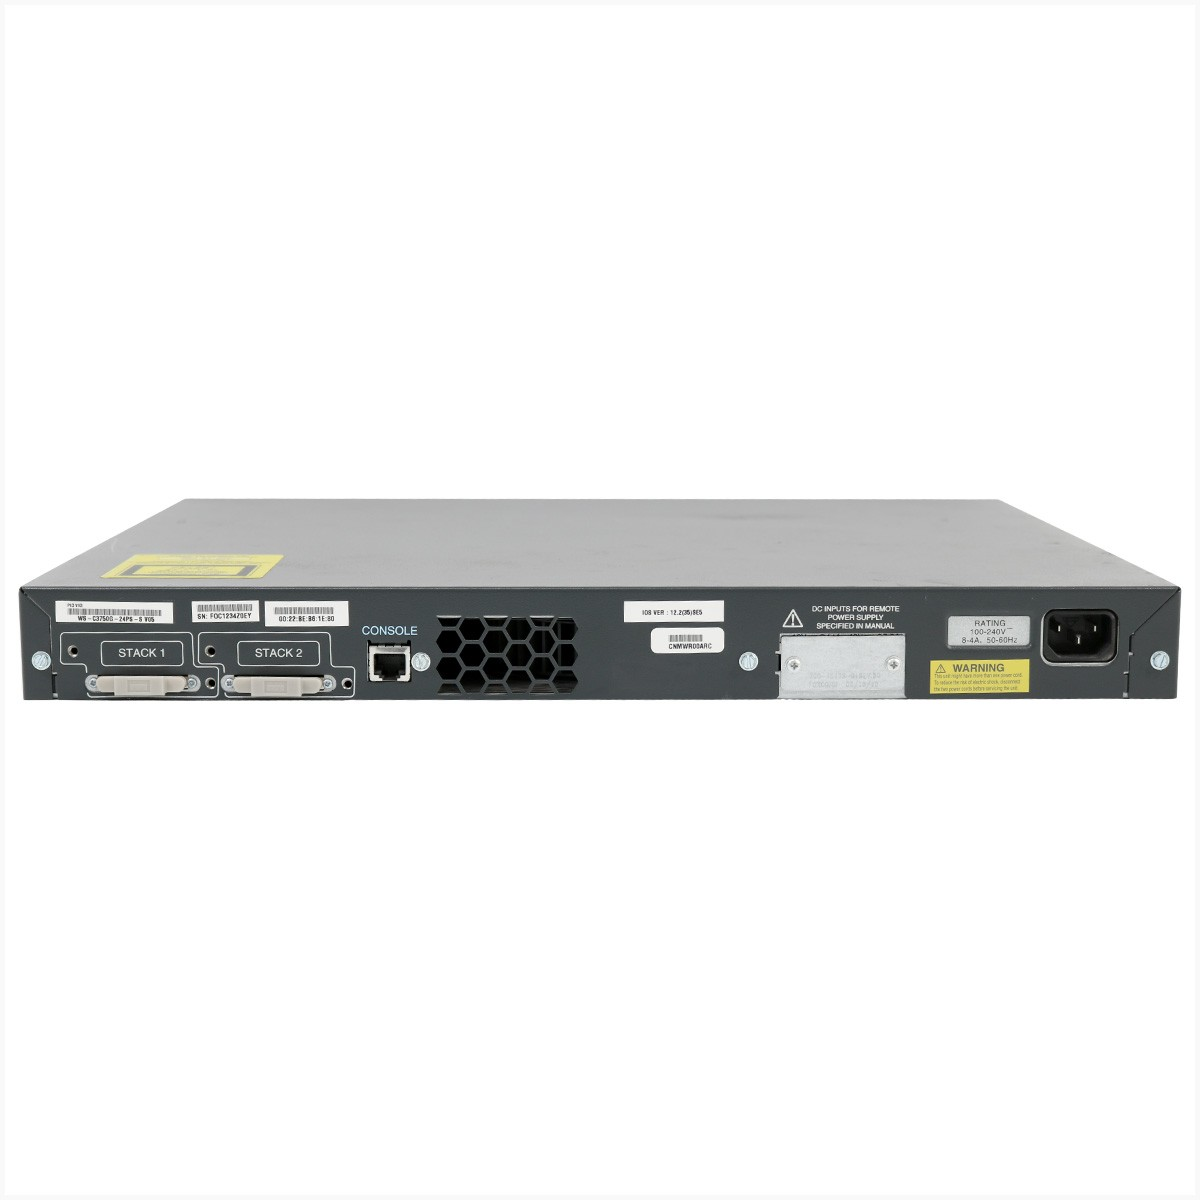 Switch cisco ws-c3750g-24ps-s 24 portas poe - usado